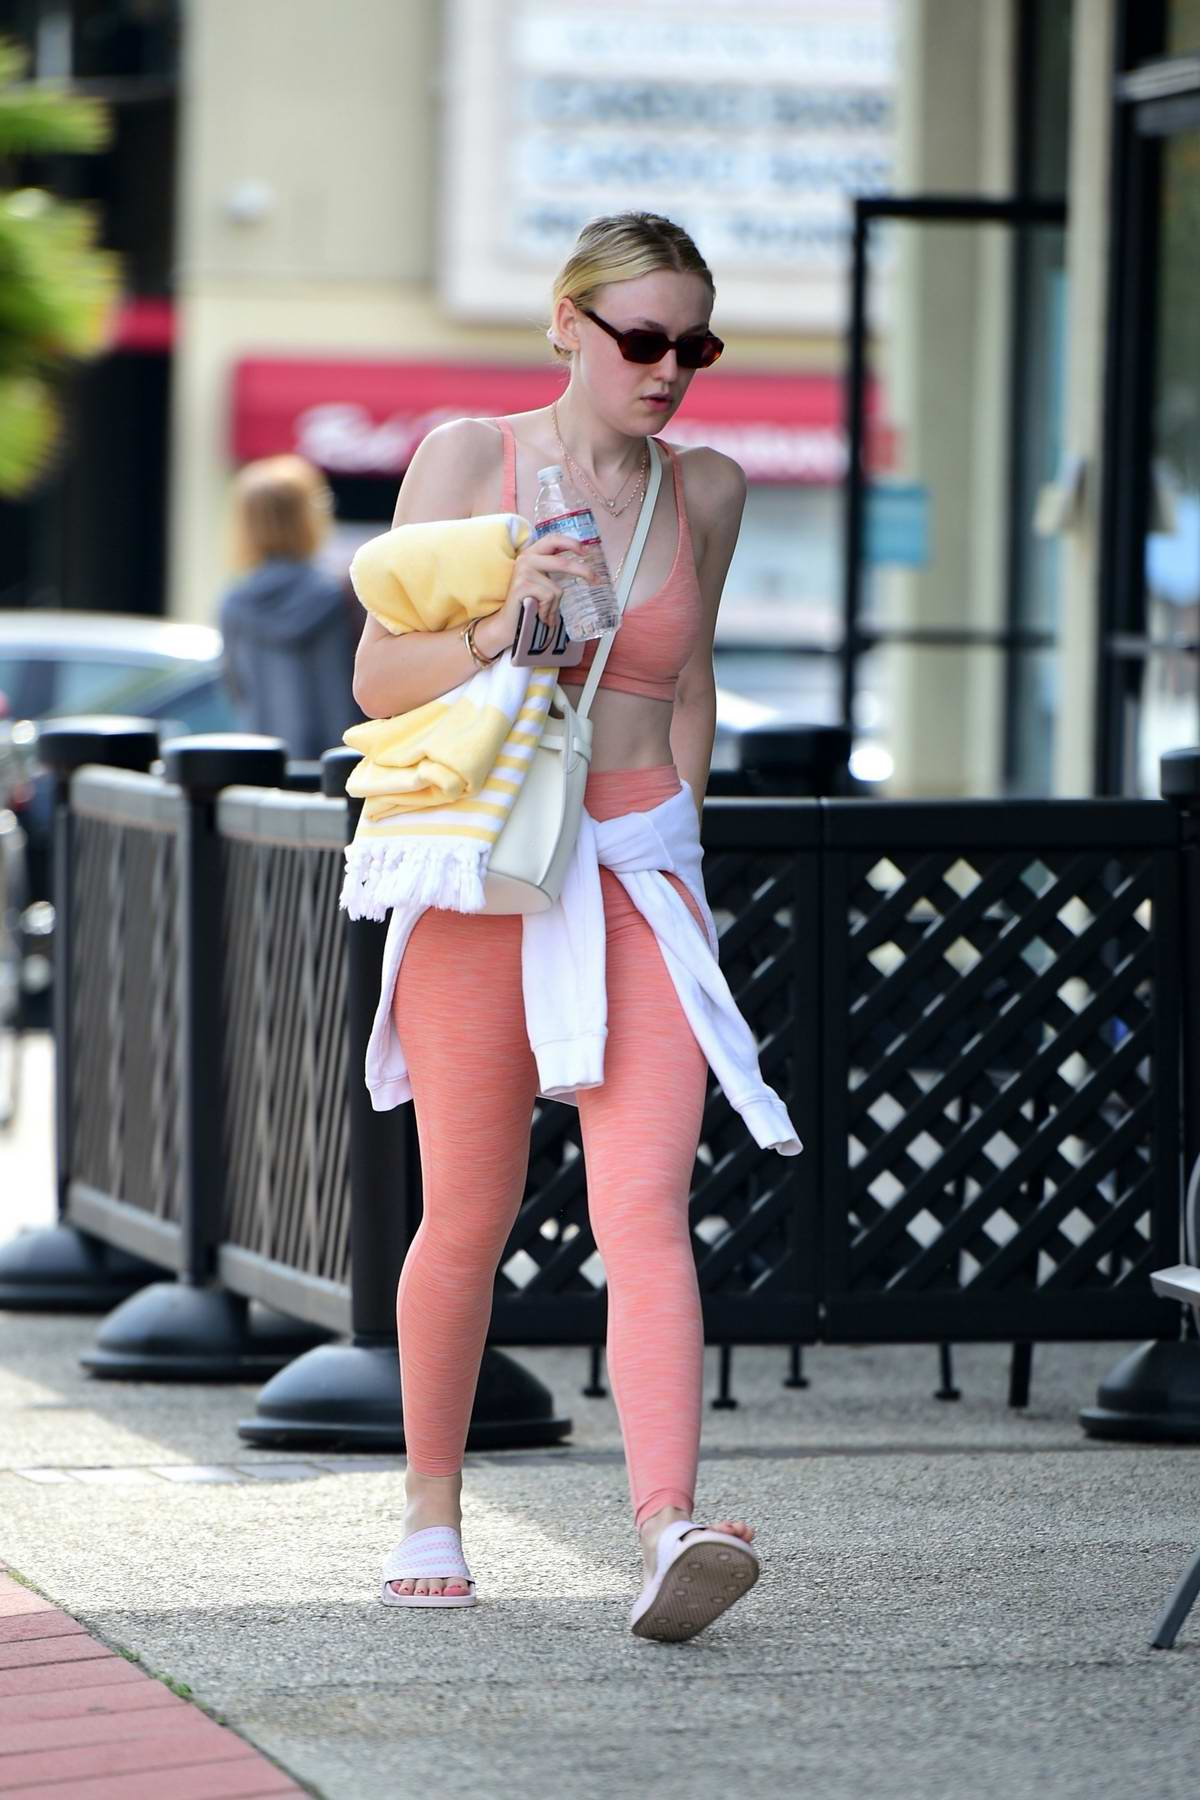 Dakota Fanning sports a peach colored crop top with matching leggings as she arrives for a workout at the gym in Studio City, Los Angeles